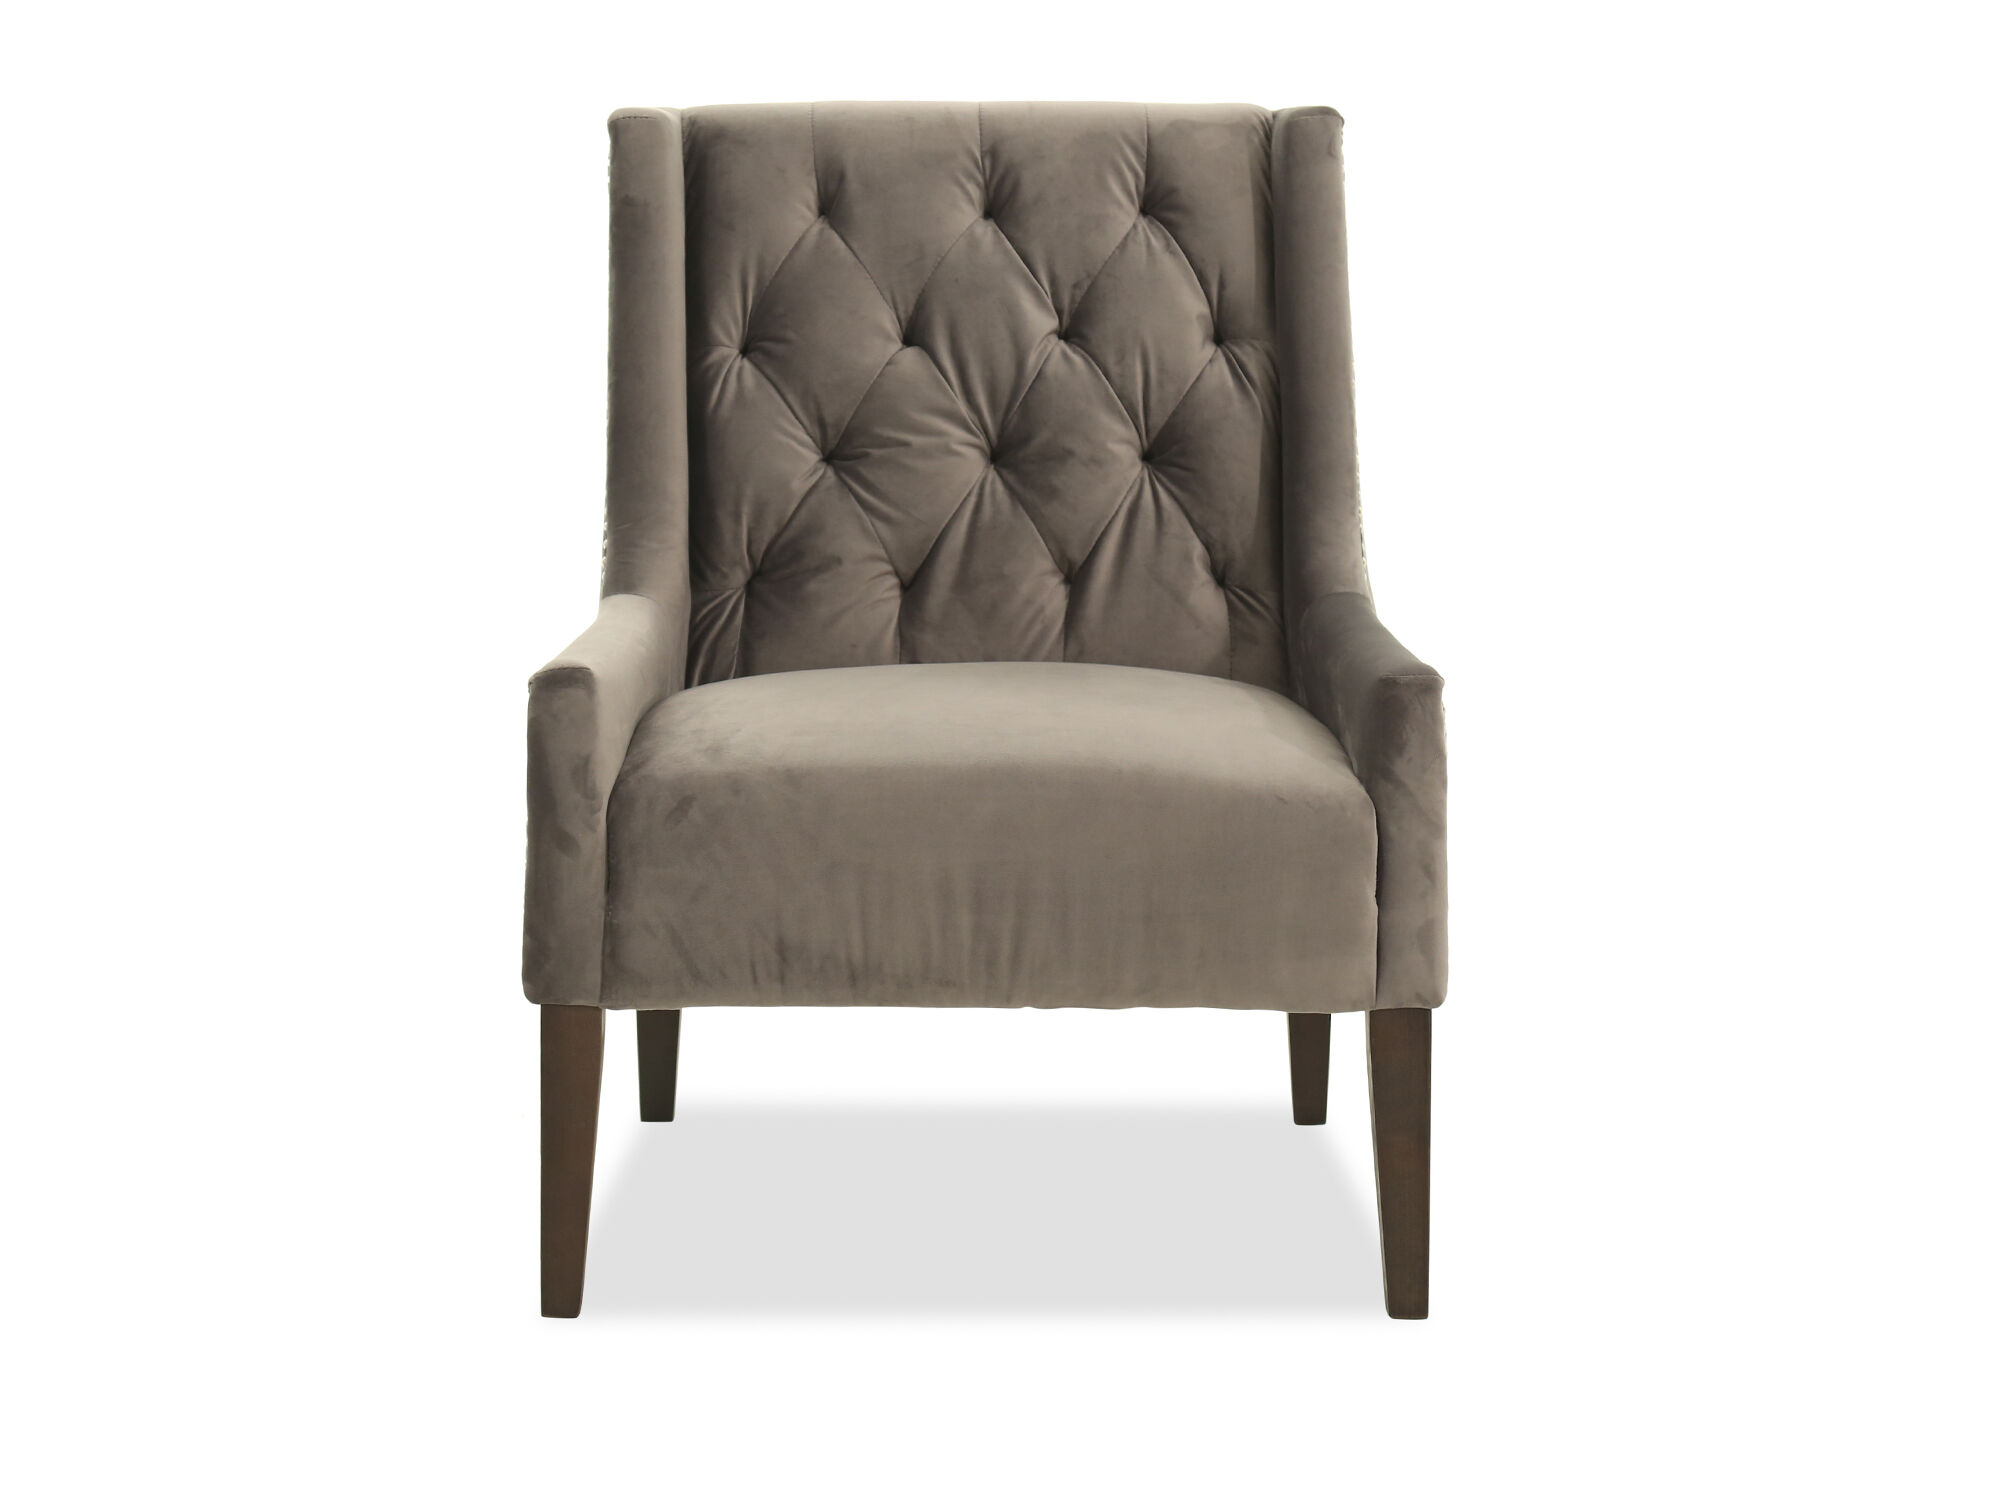 Accent Chairs For Living Room Mathis Brothersrhmathisbrothers: Casual Chairs For Bedroom At Home Improvement Advice